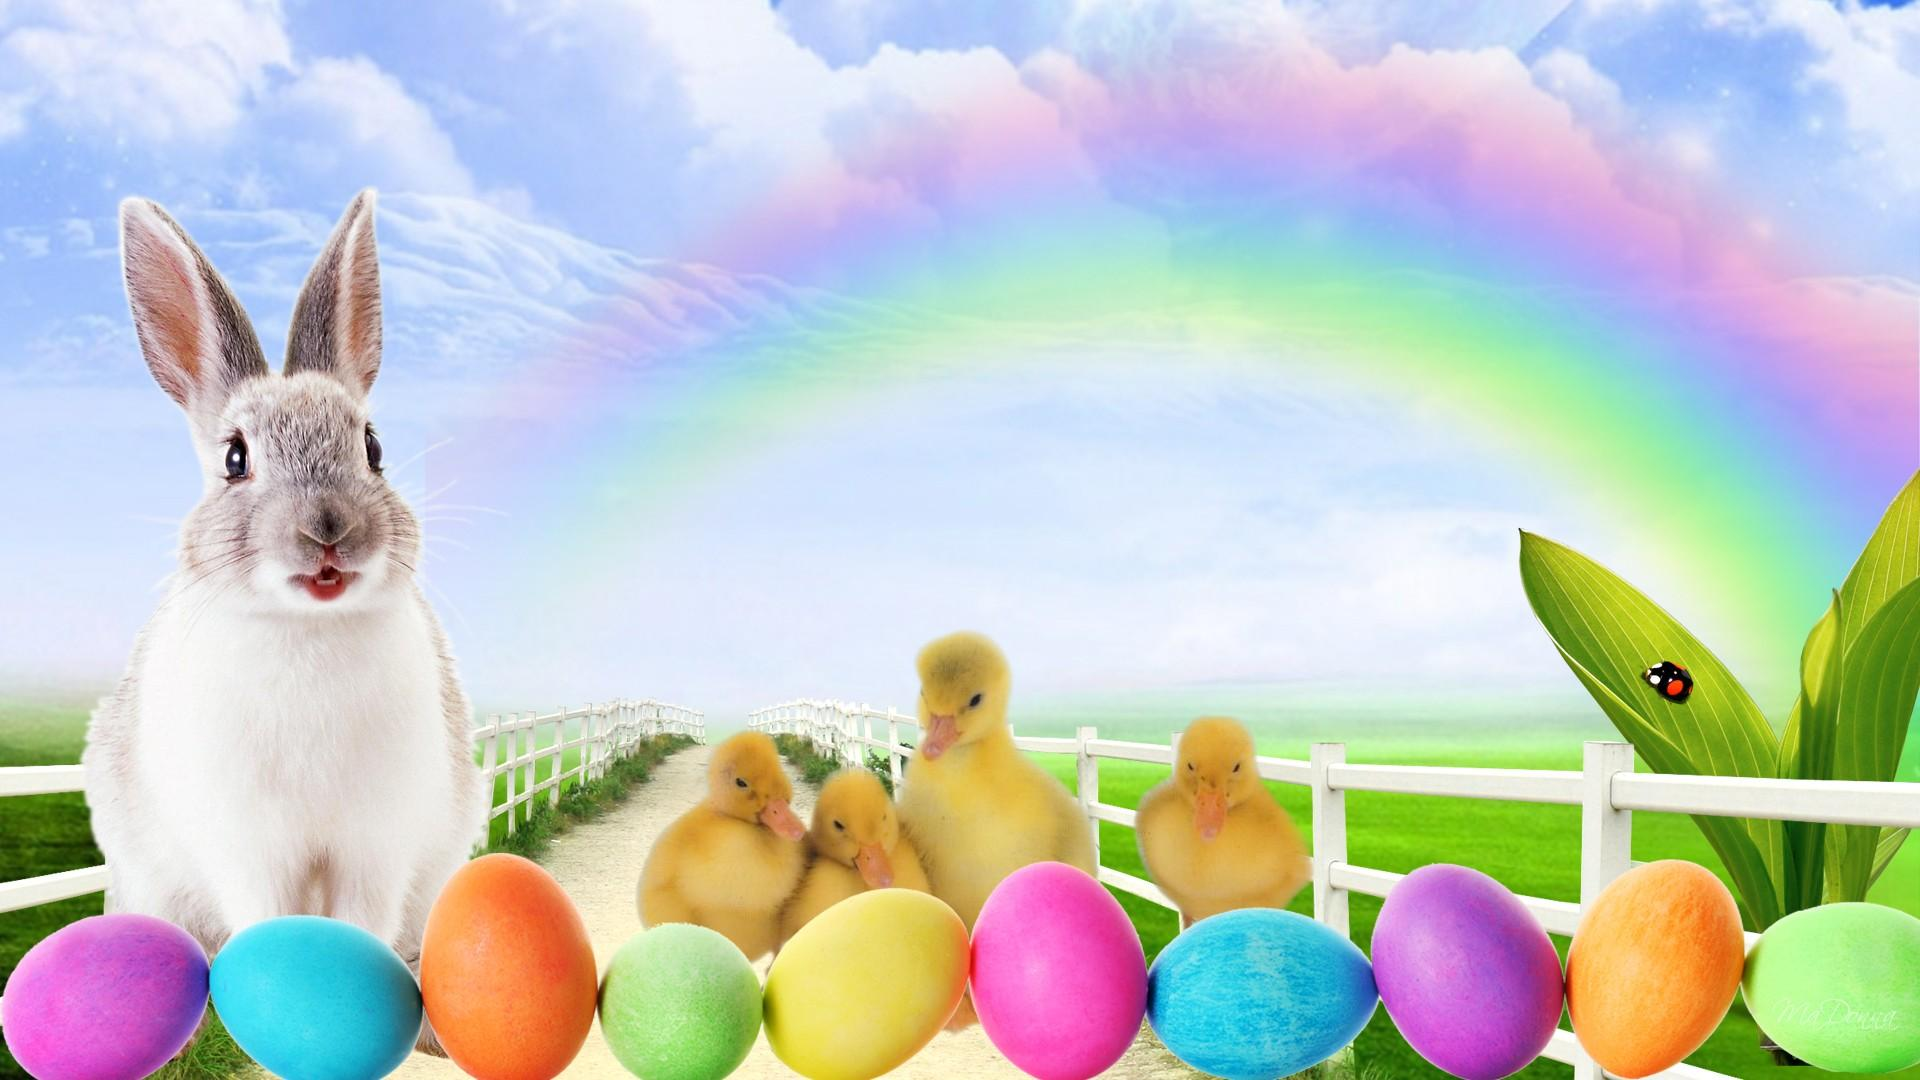 easter bunny backgrounds easter bunny and easter eggs hd wallpaper jpg 1920x1080